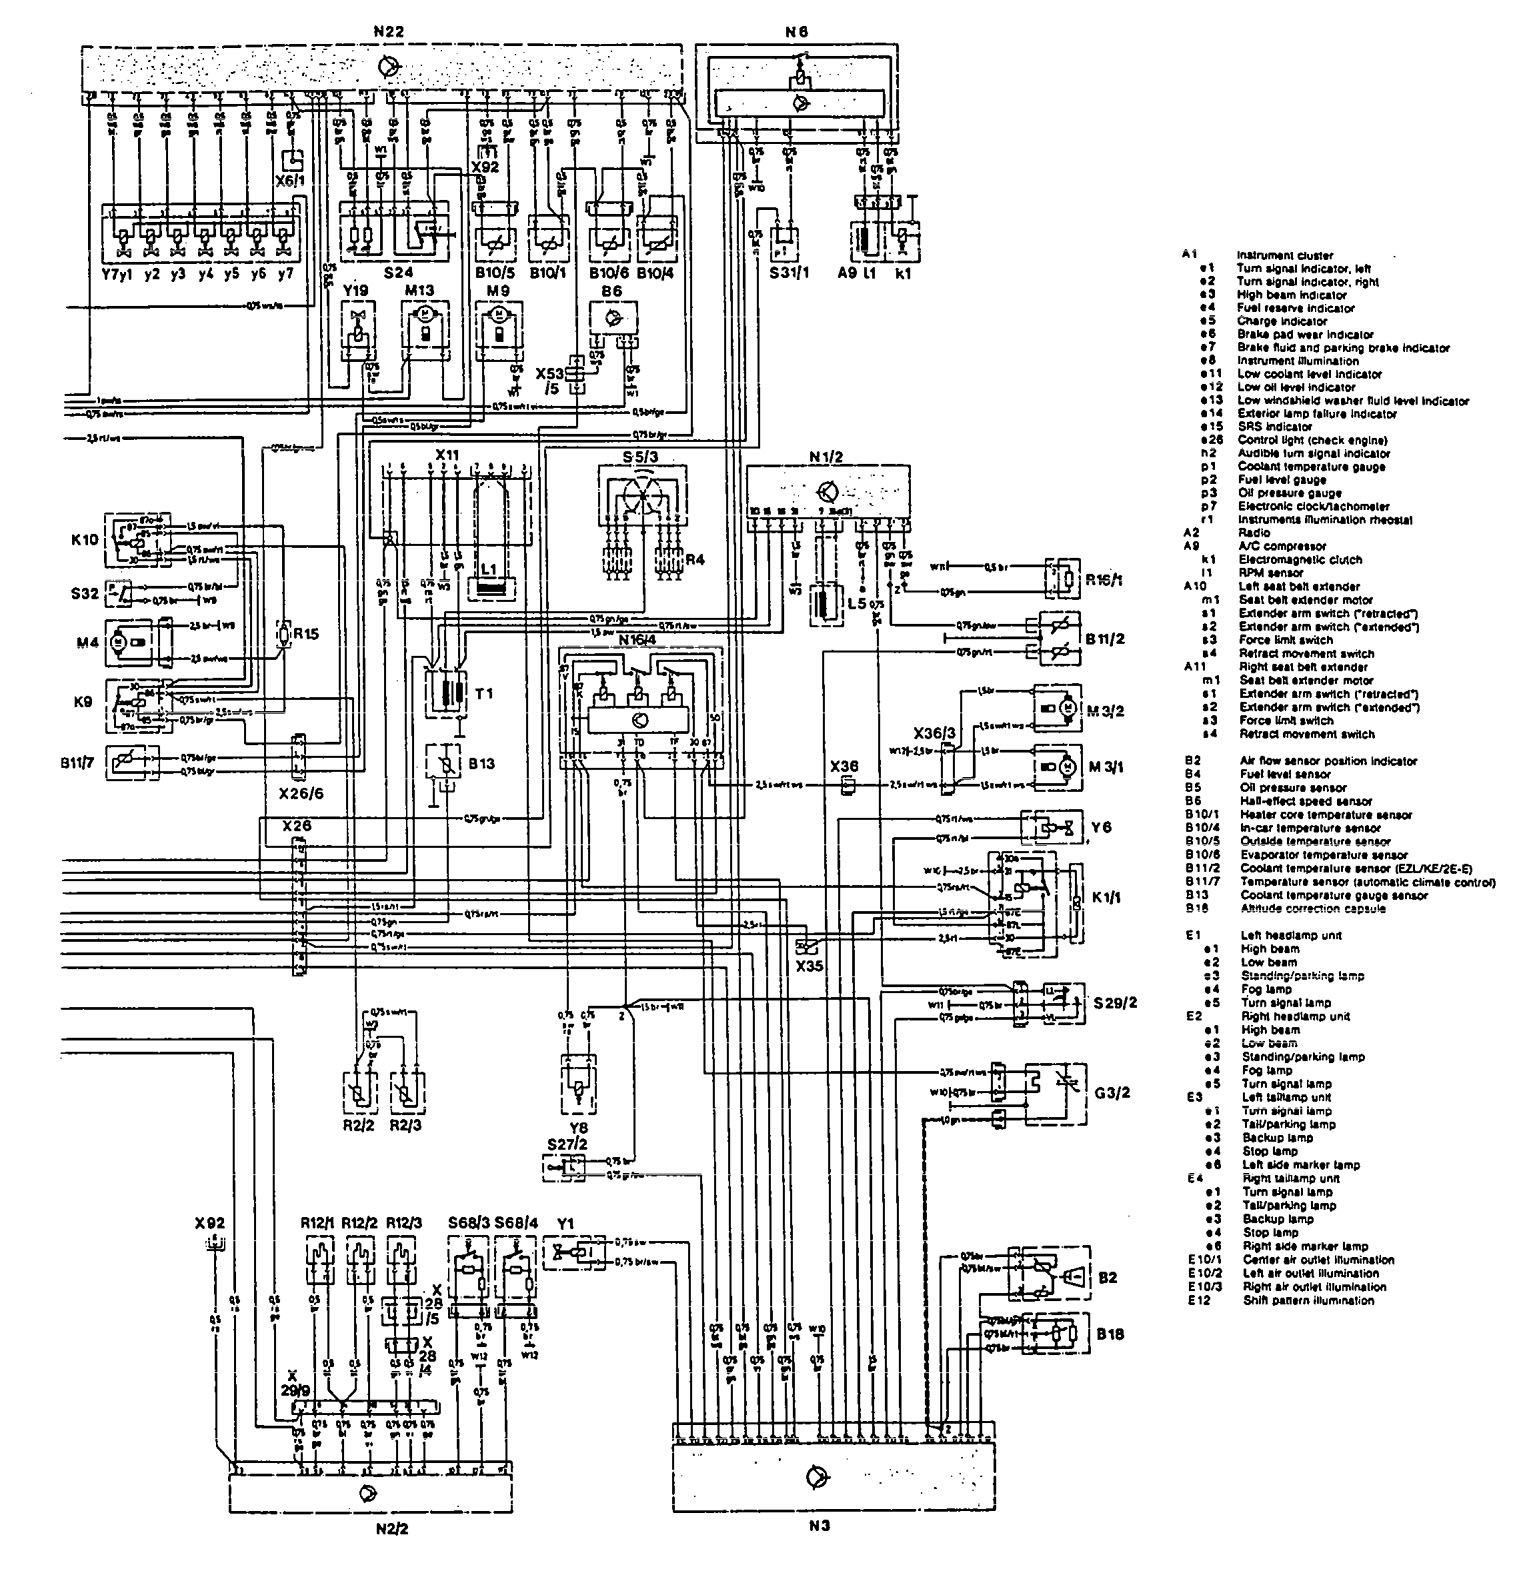 Wiring Diagram For Mercedes 300ce Fuse Box Benz Diagrams 1992 1993 Starting Rh Carknowledge Info 300sd Power Windows Radio